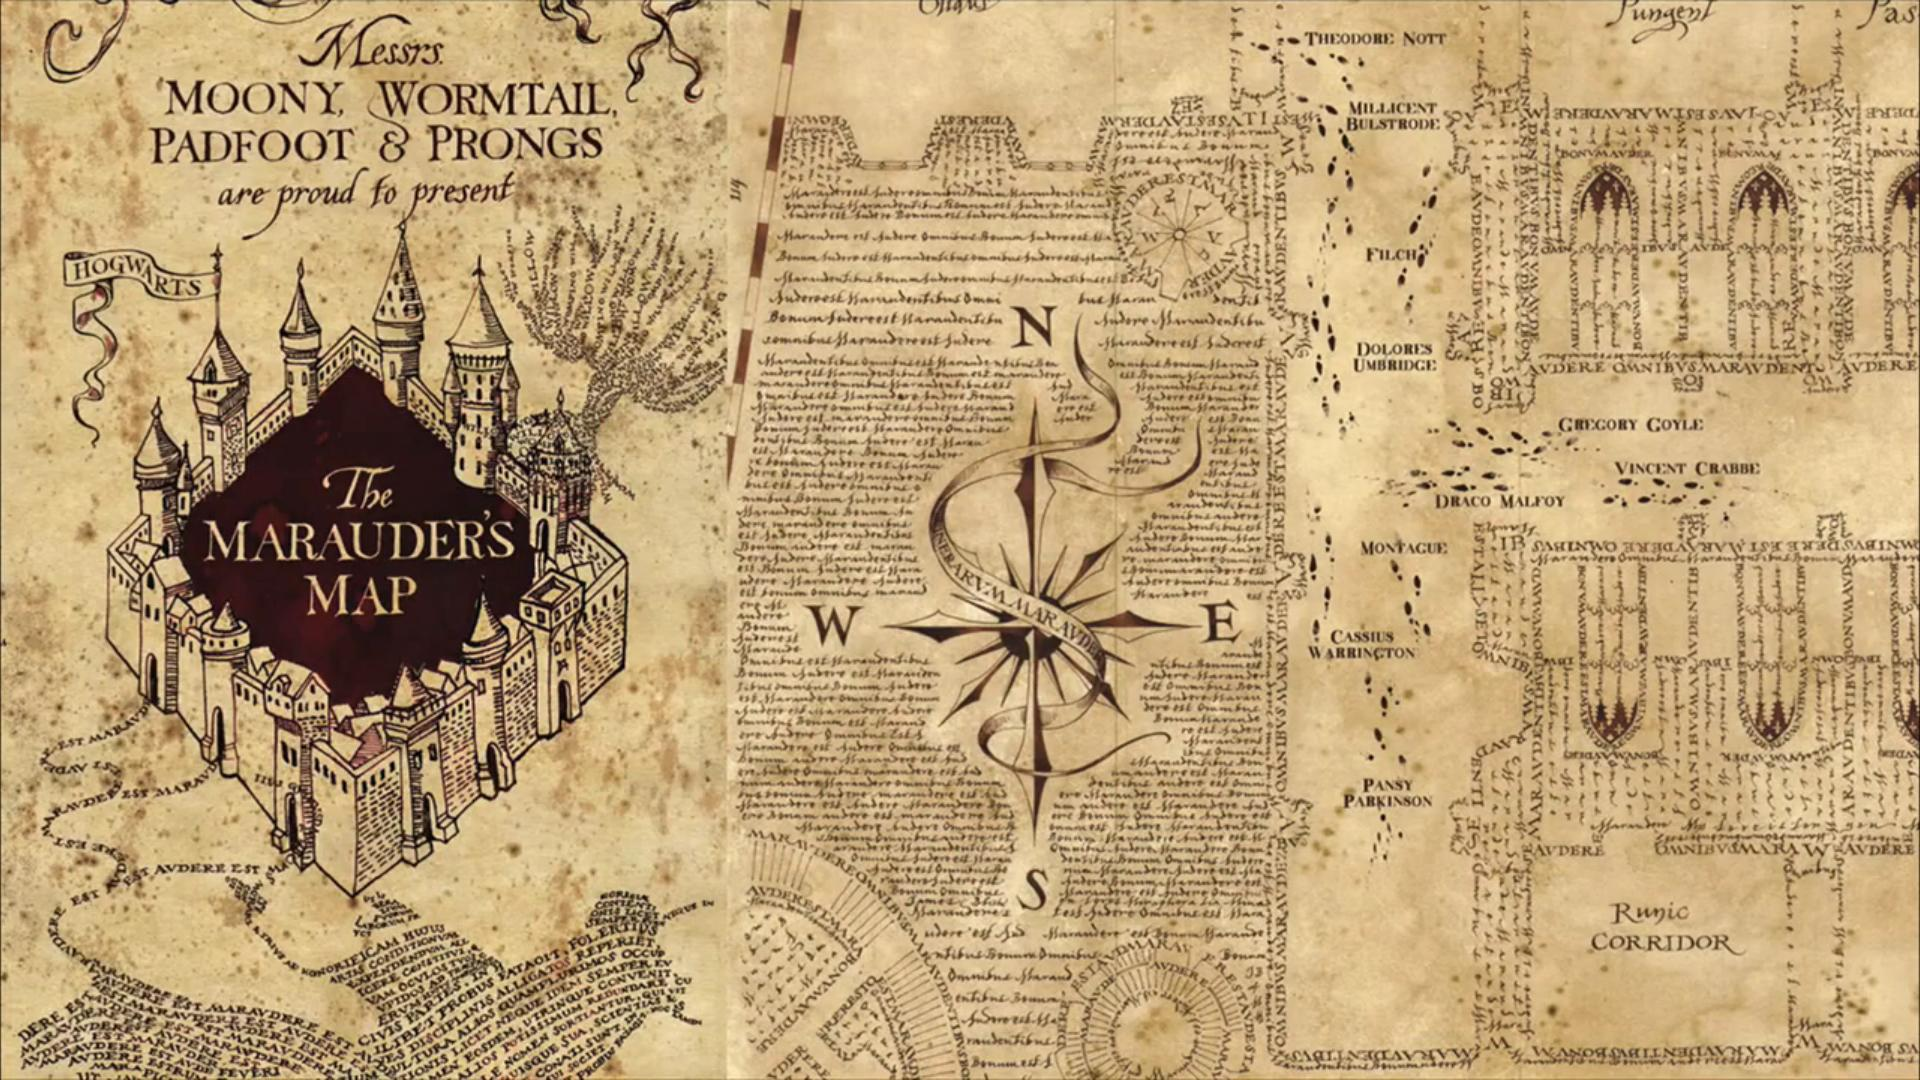 Marauder's Map open